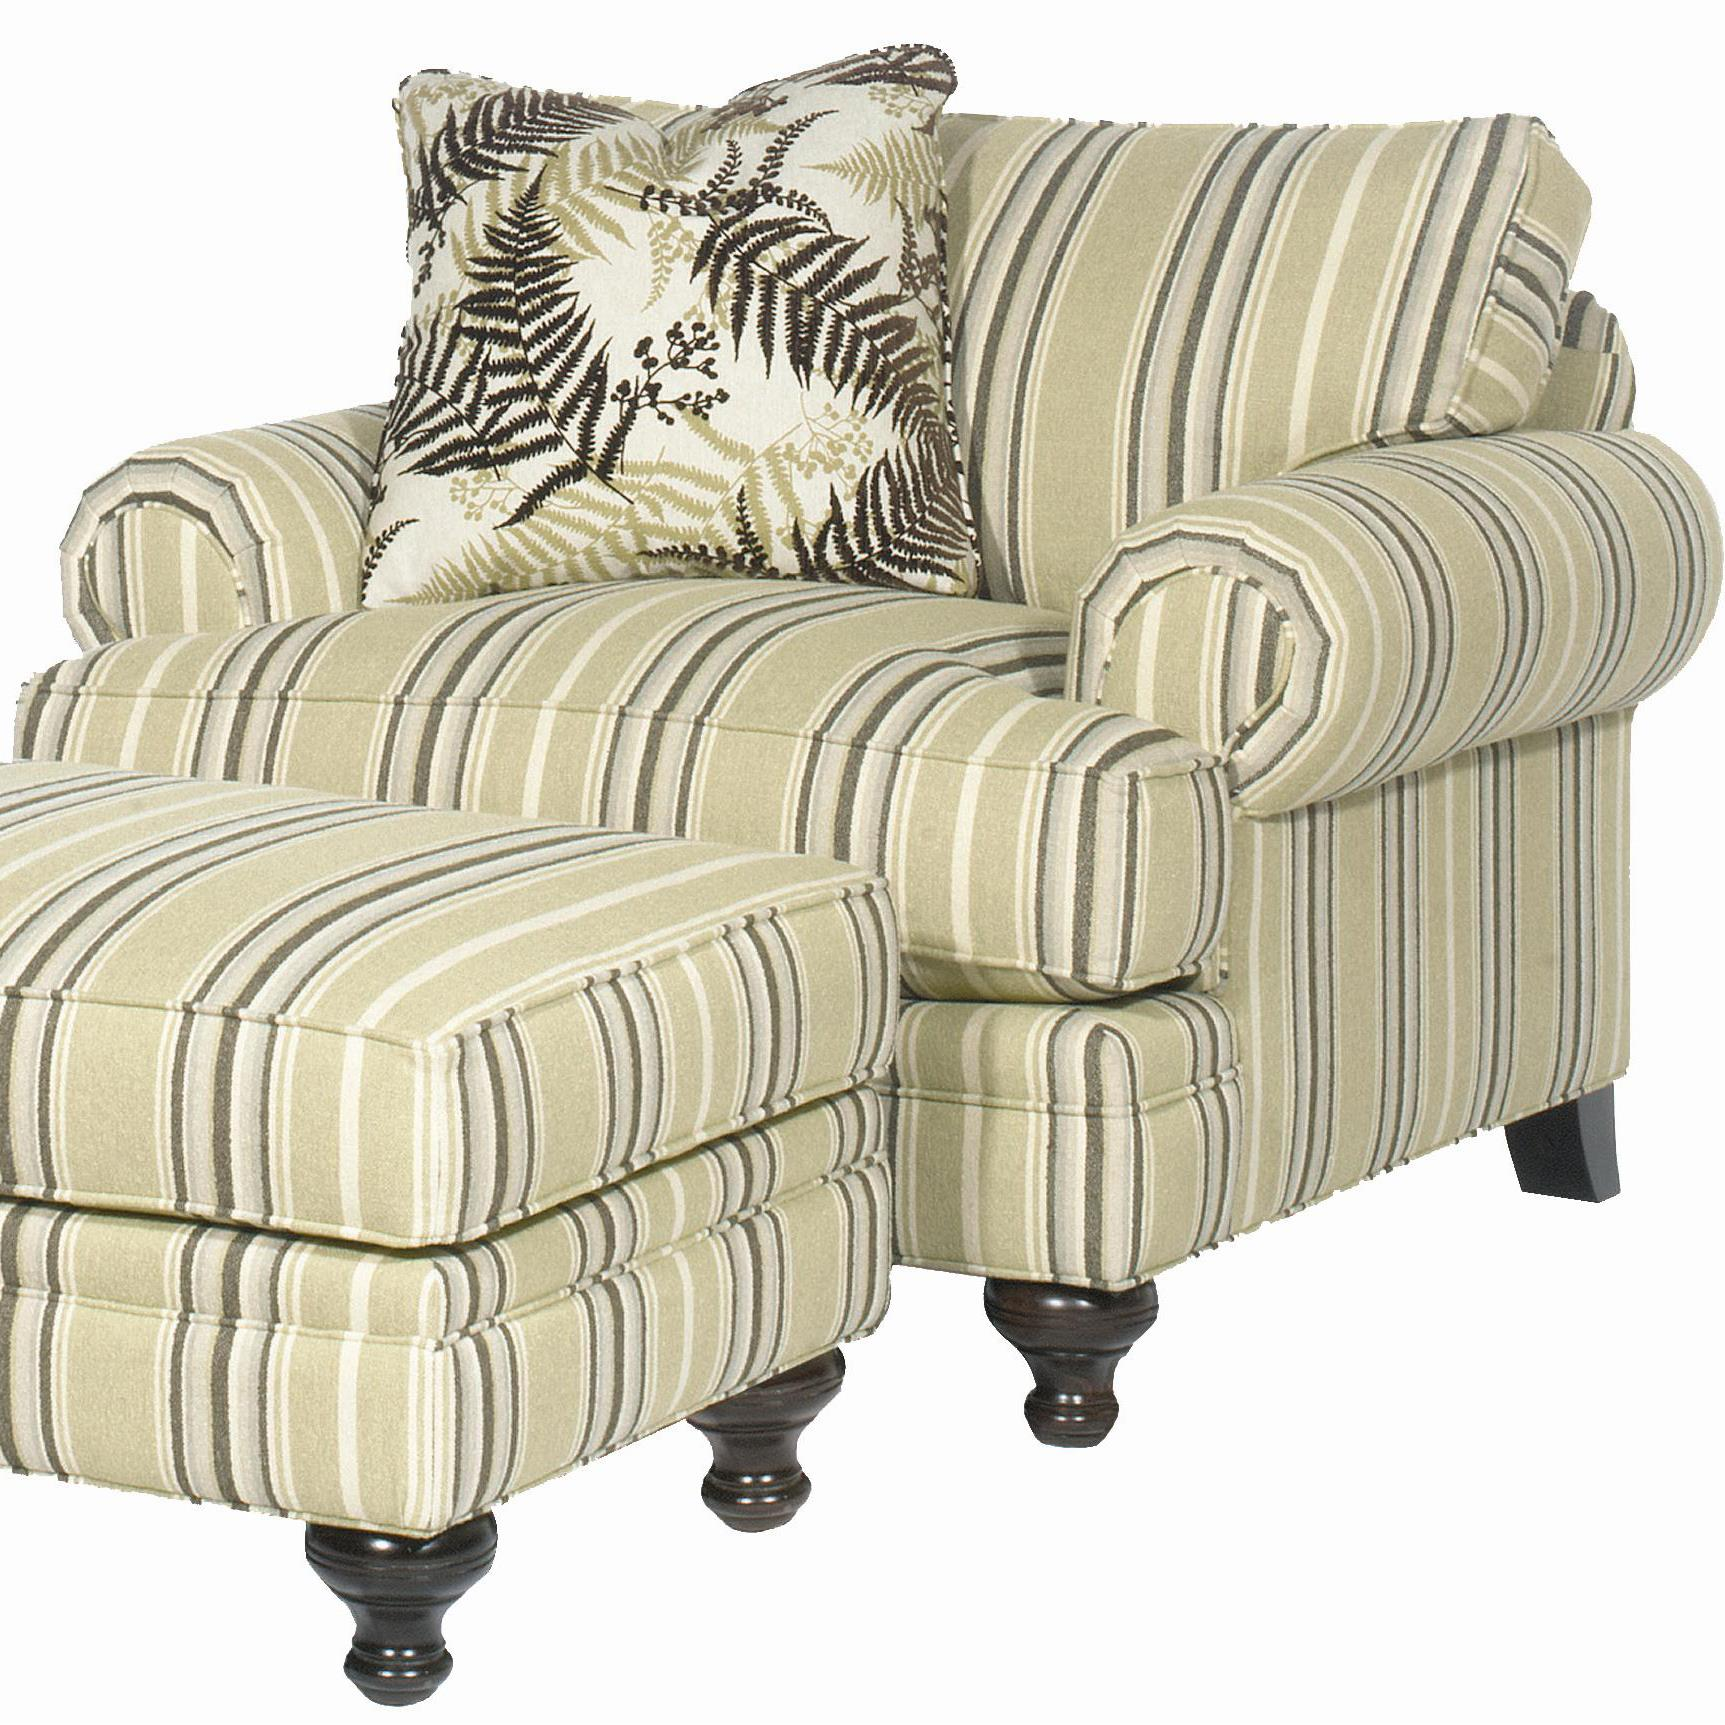 P709900 Chair by Paula Deen by Craftmaster at Home Collections Furniture